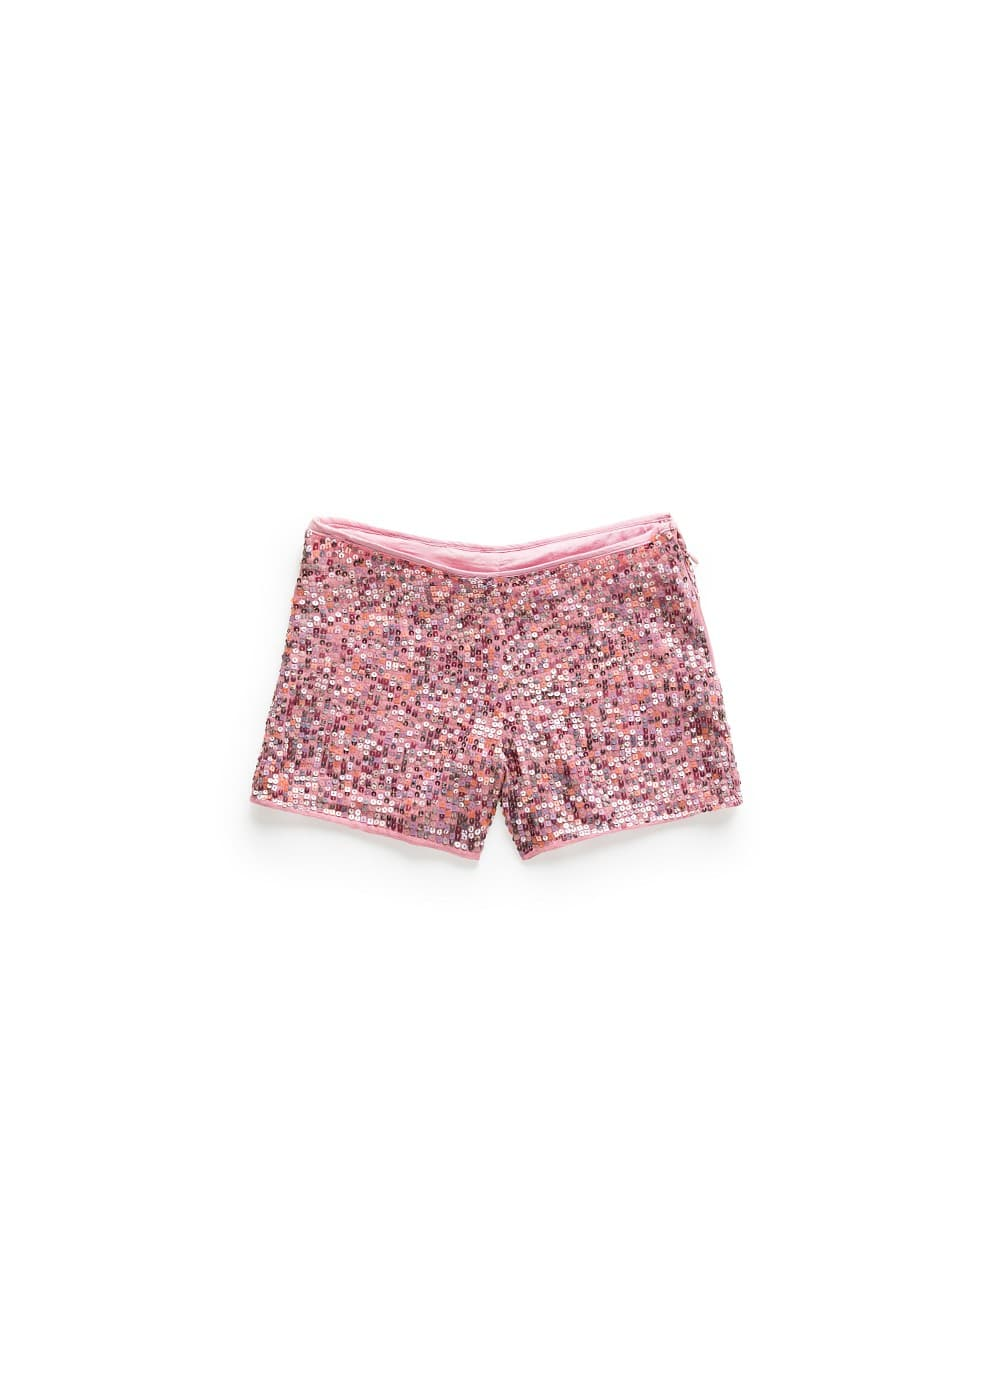 Multicolor sequin shorts